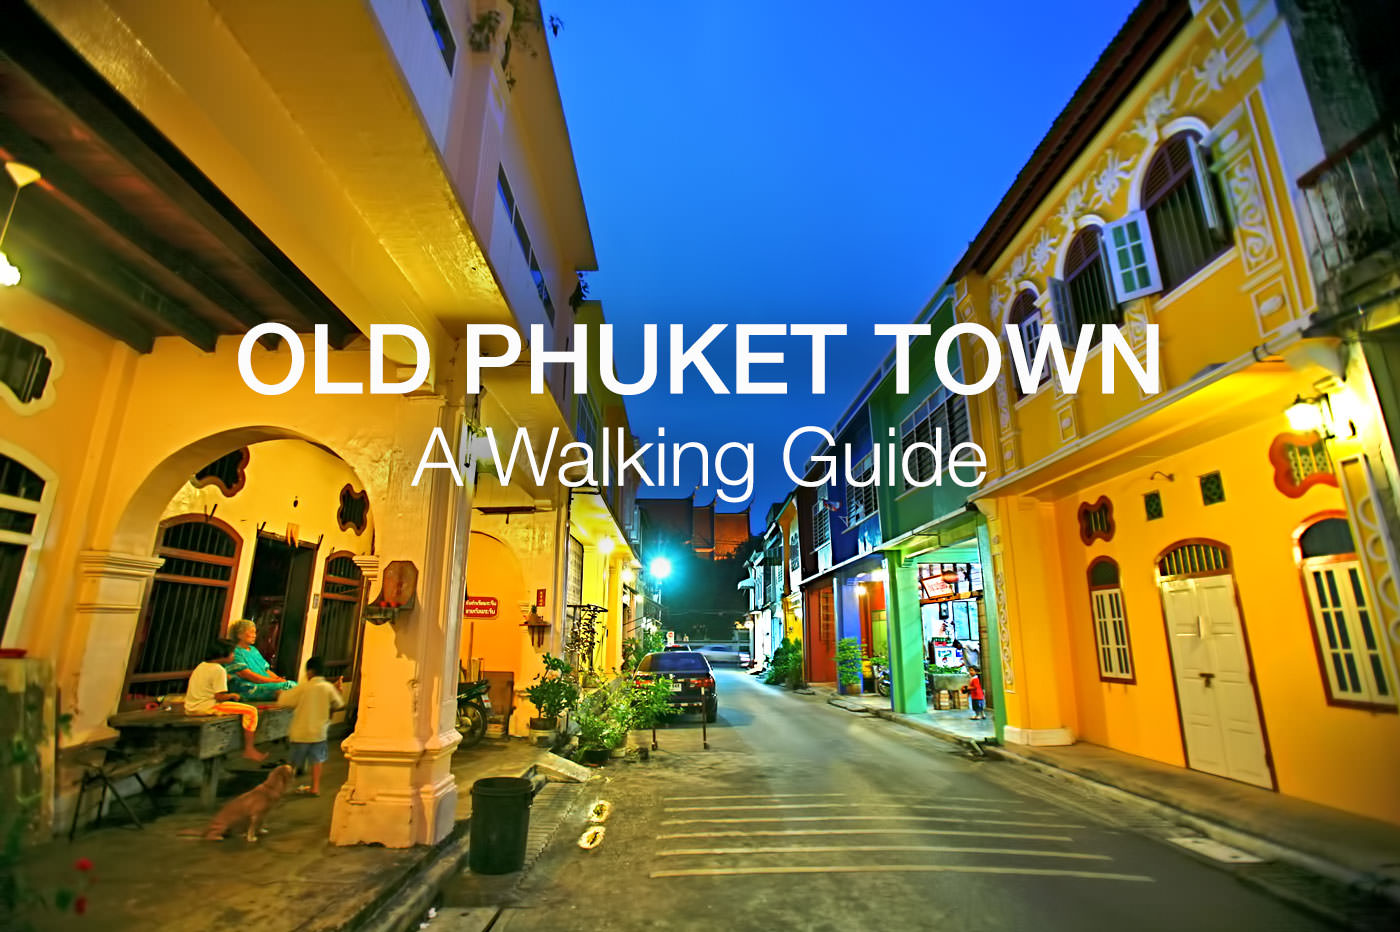 Phuket Town A Walking Guide to Old Phuket Streets Phuket 101